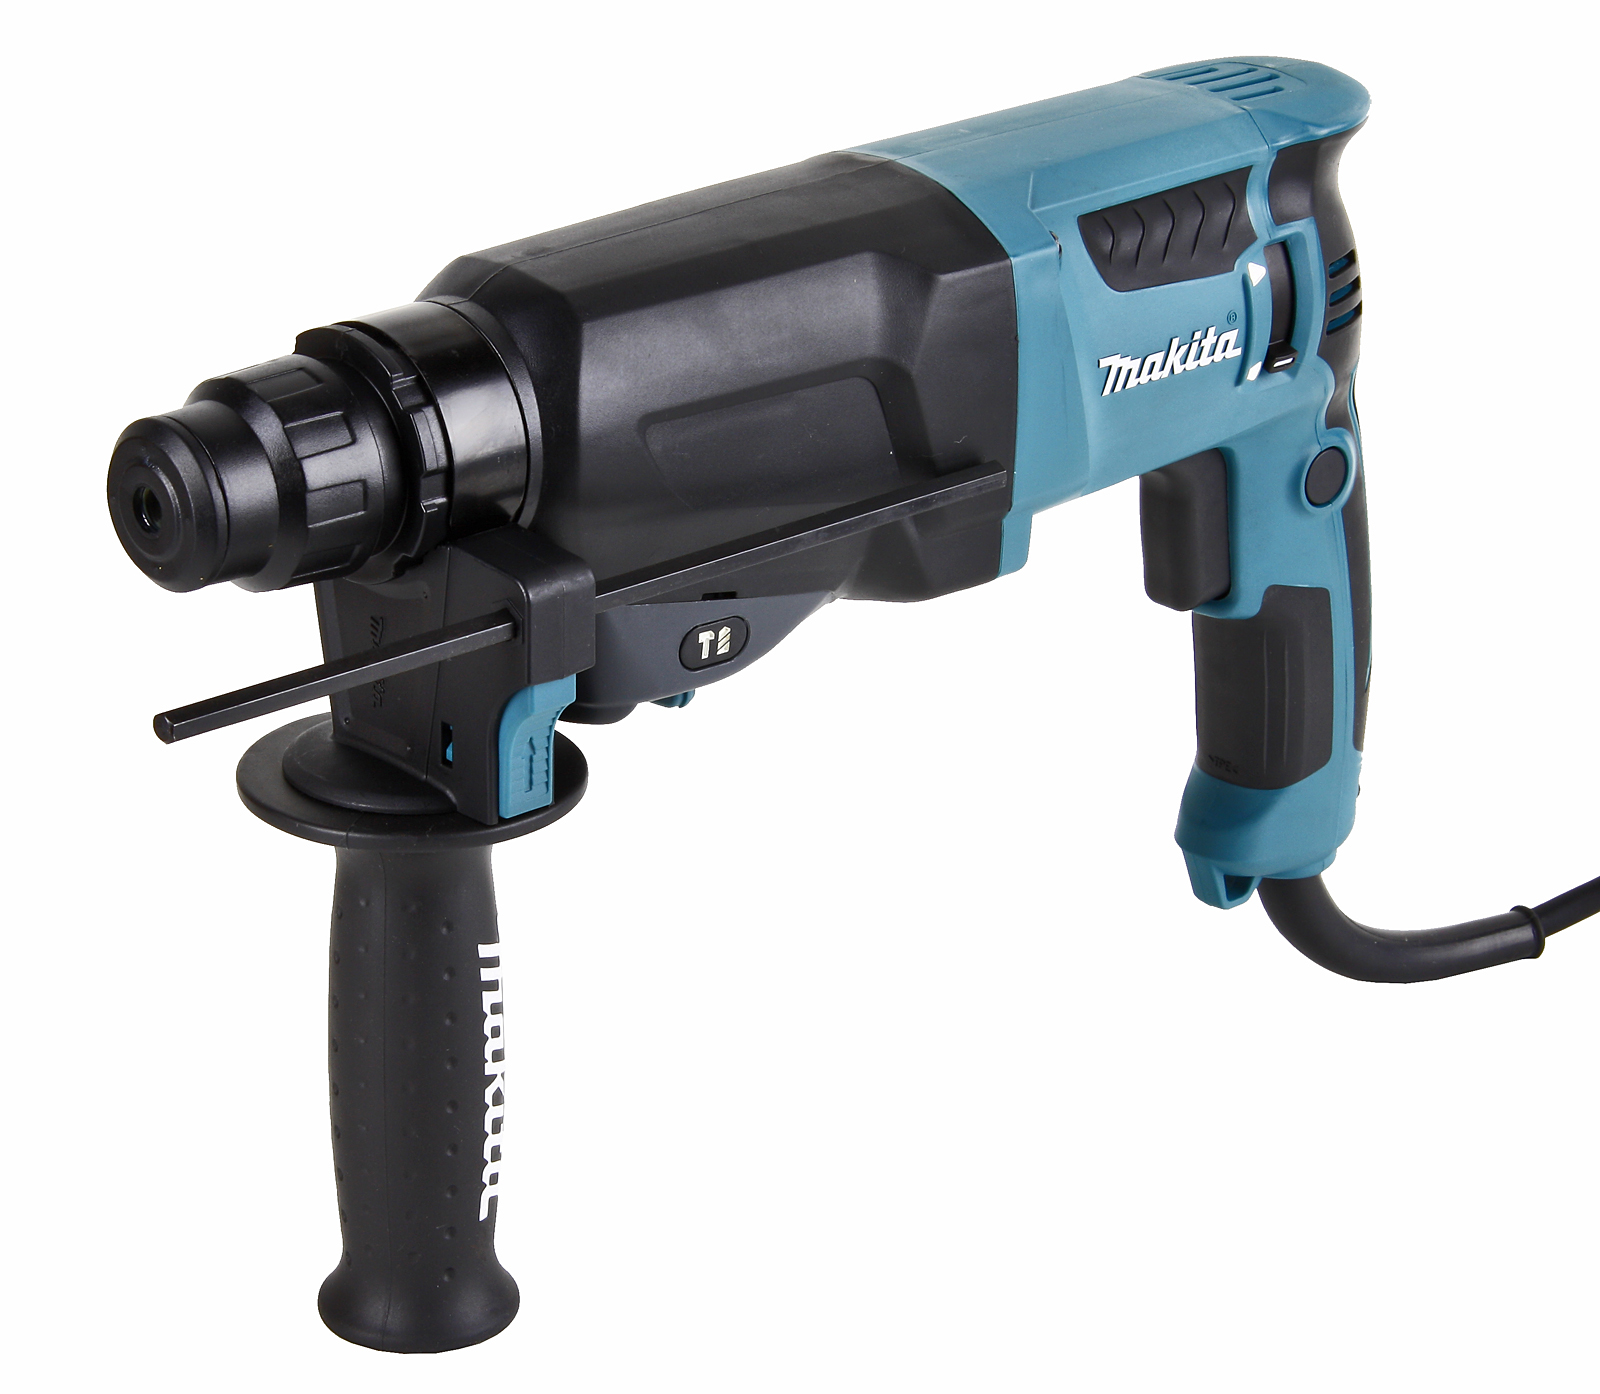 Перфоратор Makita Hr2300 перфоратор makita sds plus hr2300